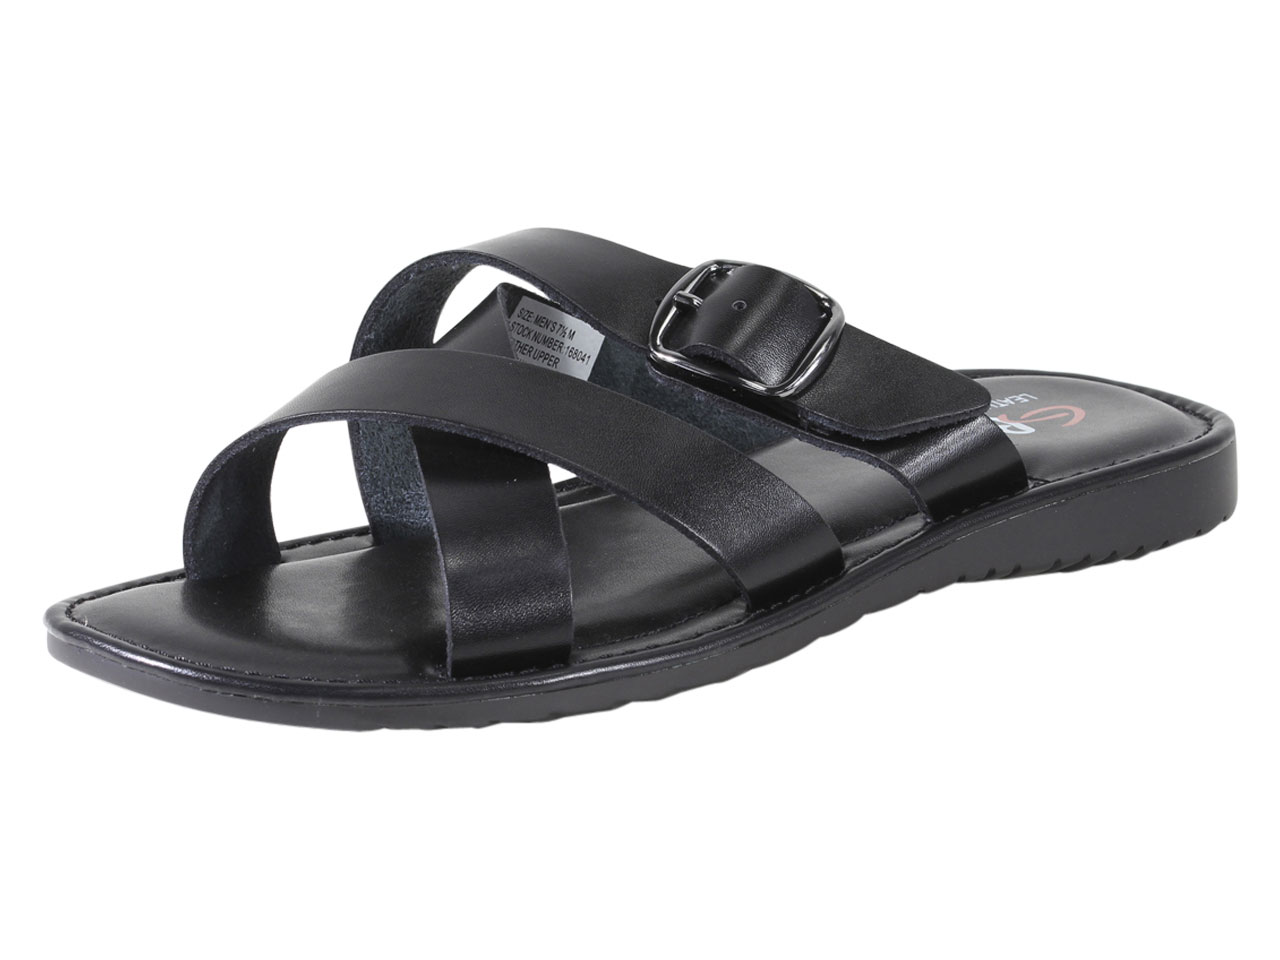 GBX Men s Siano Slide Sandal 12 M Black Leather  4ae1f7520